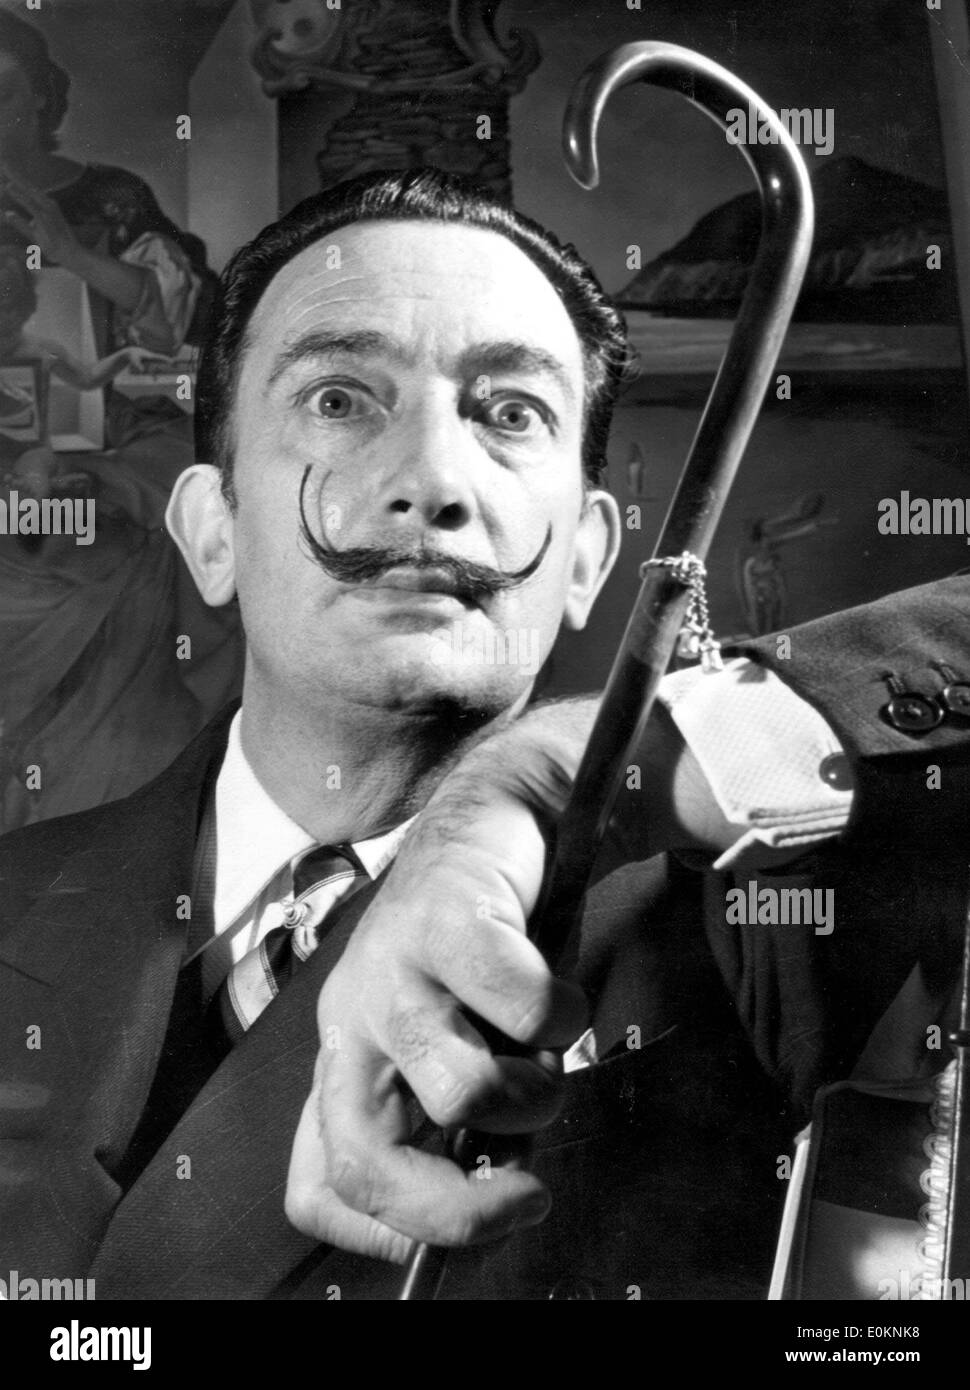 Portrait of surrealist artist Salvador Dali - Stock Image